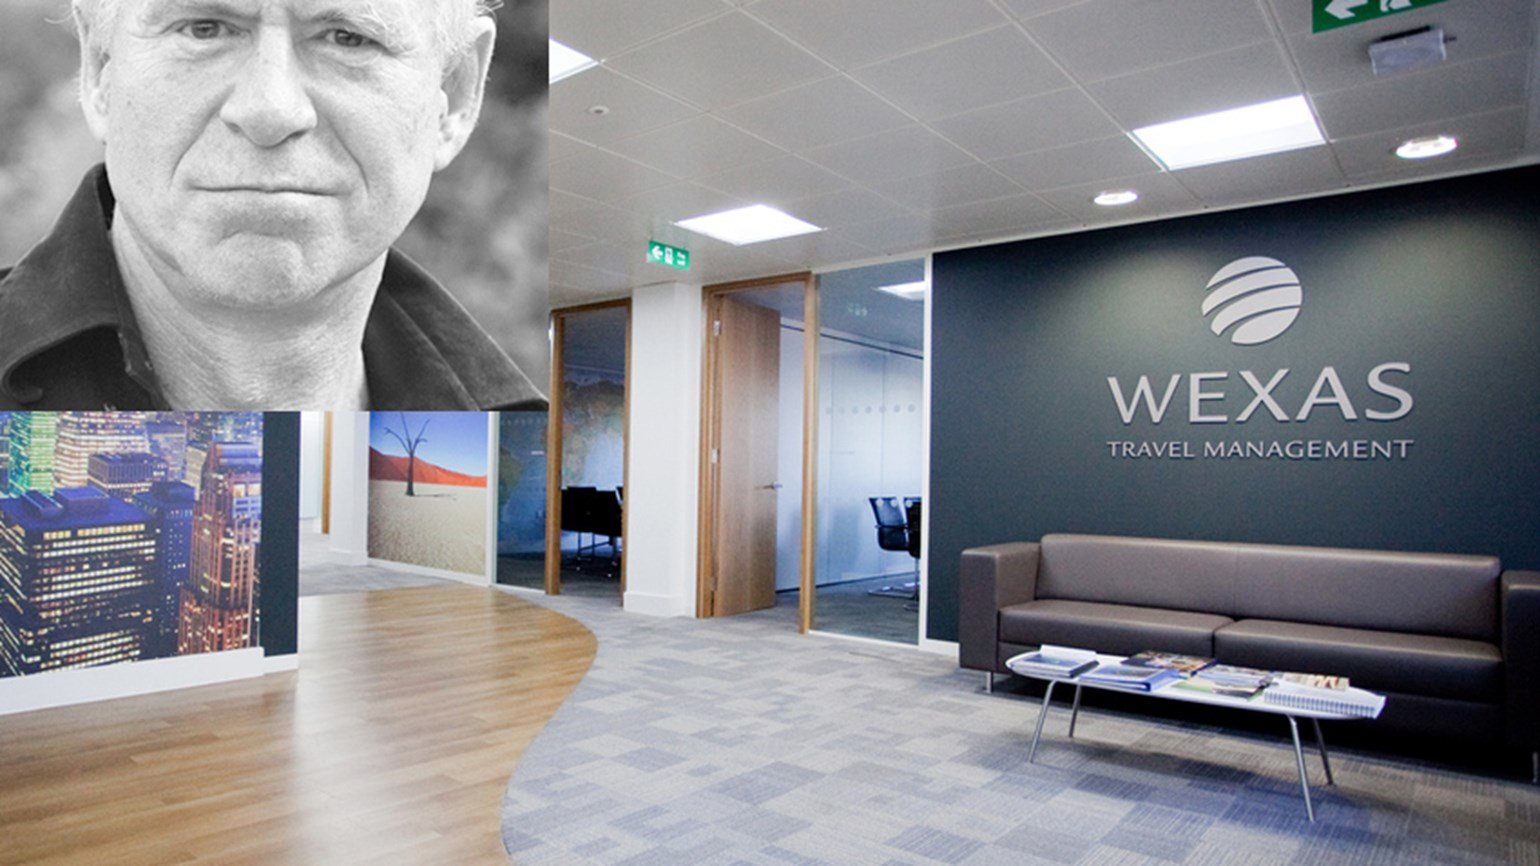 Wexas founder and chairman Ian Wilson dies